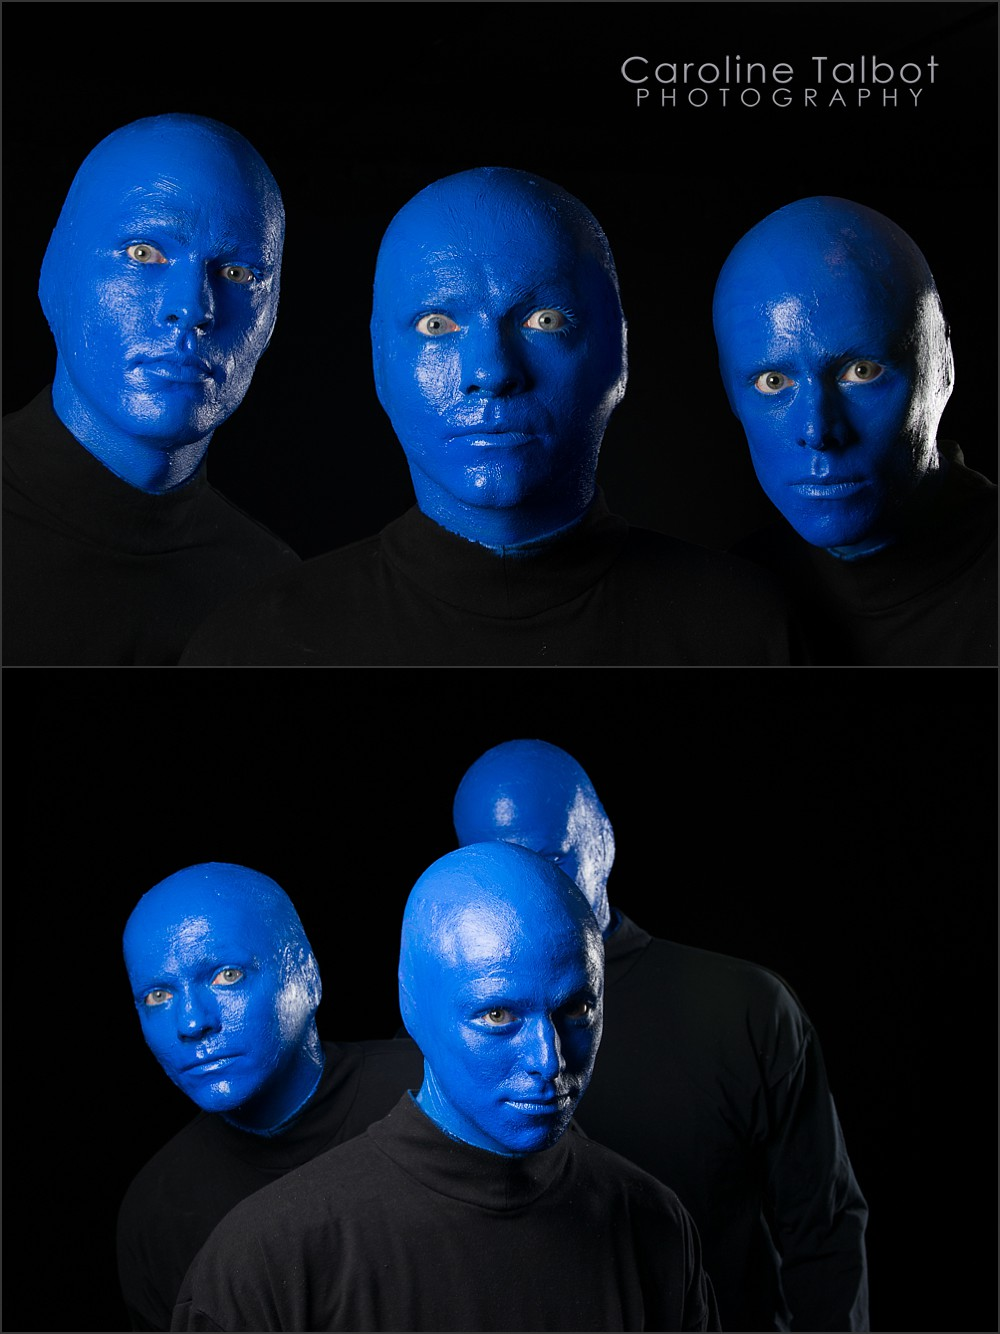 Behind the scenes at Blue Man Group in Boston, Greg Balla, Brian Tavener, Mike Brown